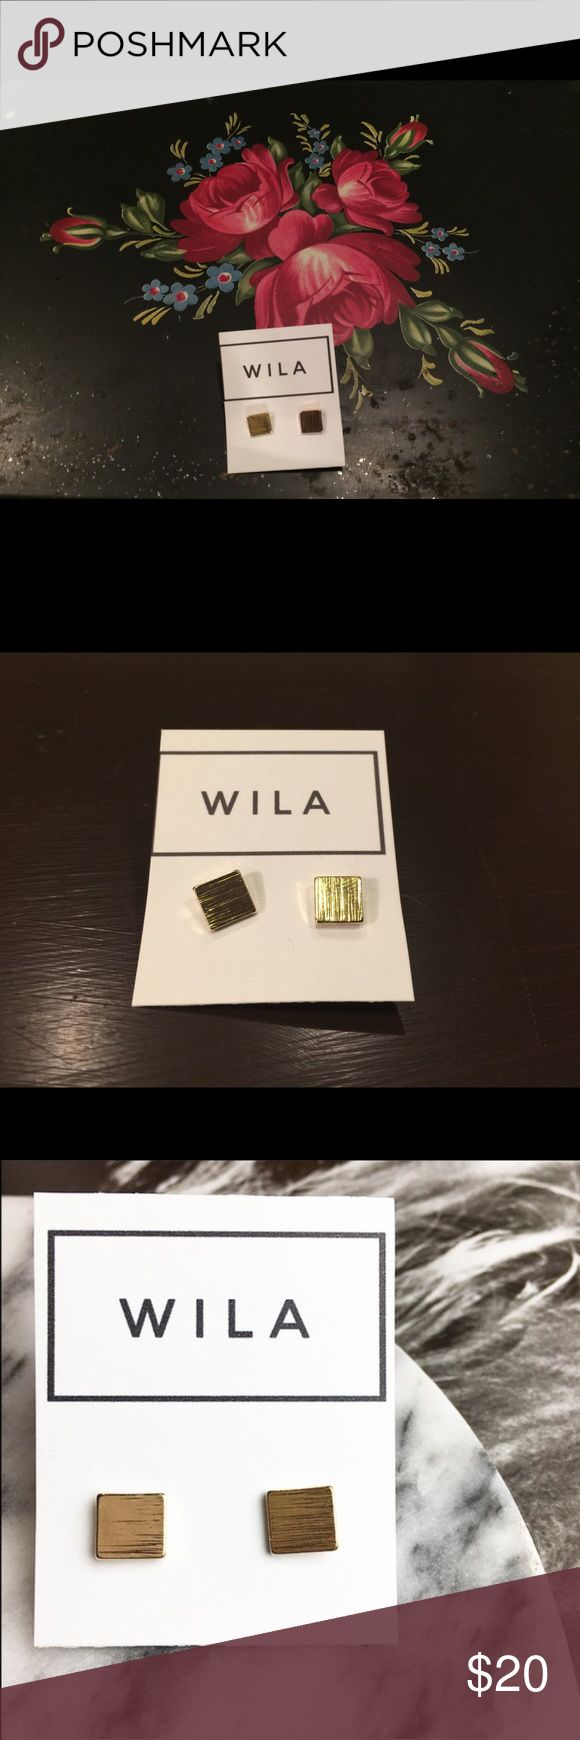 Minimalist Square Stud Earrings 14k Gold NWT! Minimalist Square Stud Earrings 14k Gold Plated Alloy Metals NWT! Quarter shown in last pic for size comparison. By Wila. Better looking in person than in pics!     625 WILA Jewelry Earrings